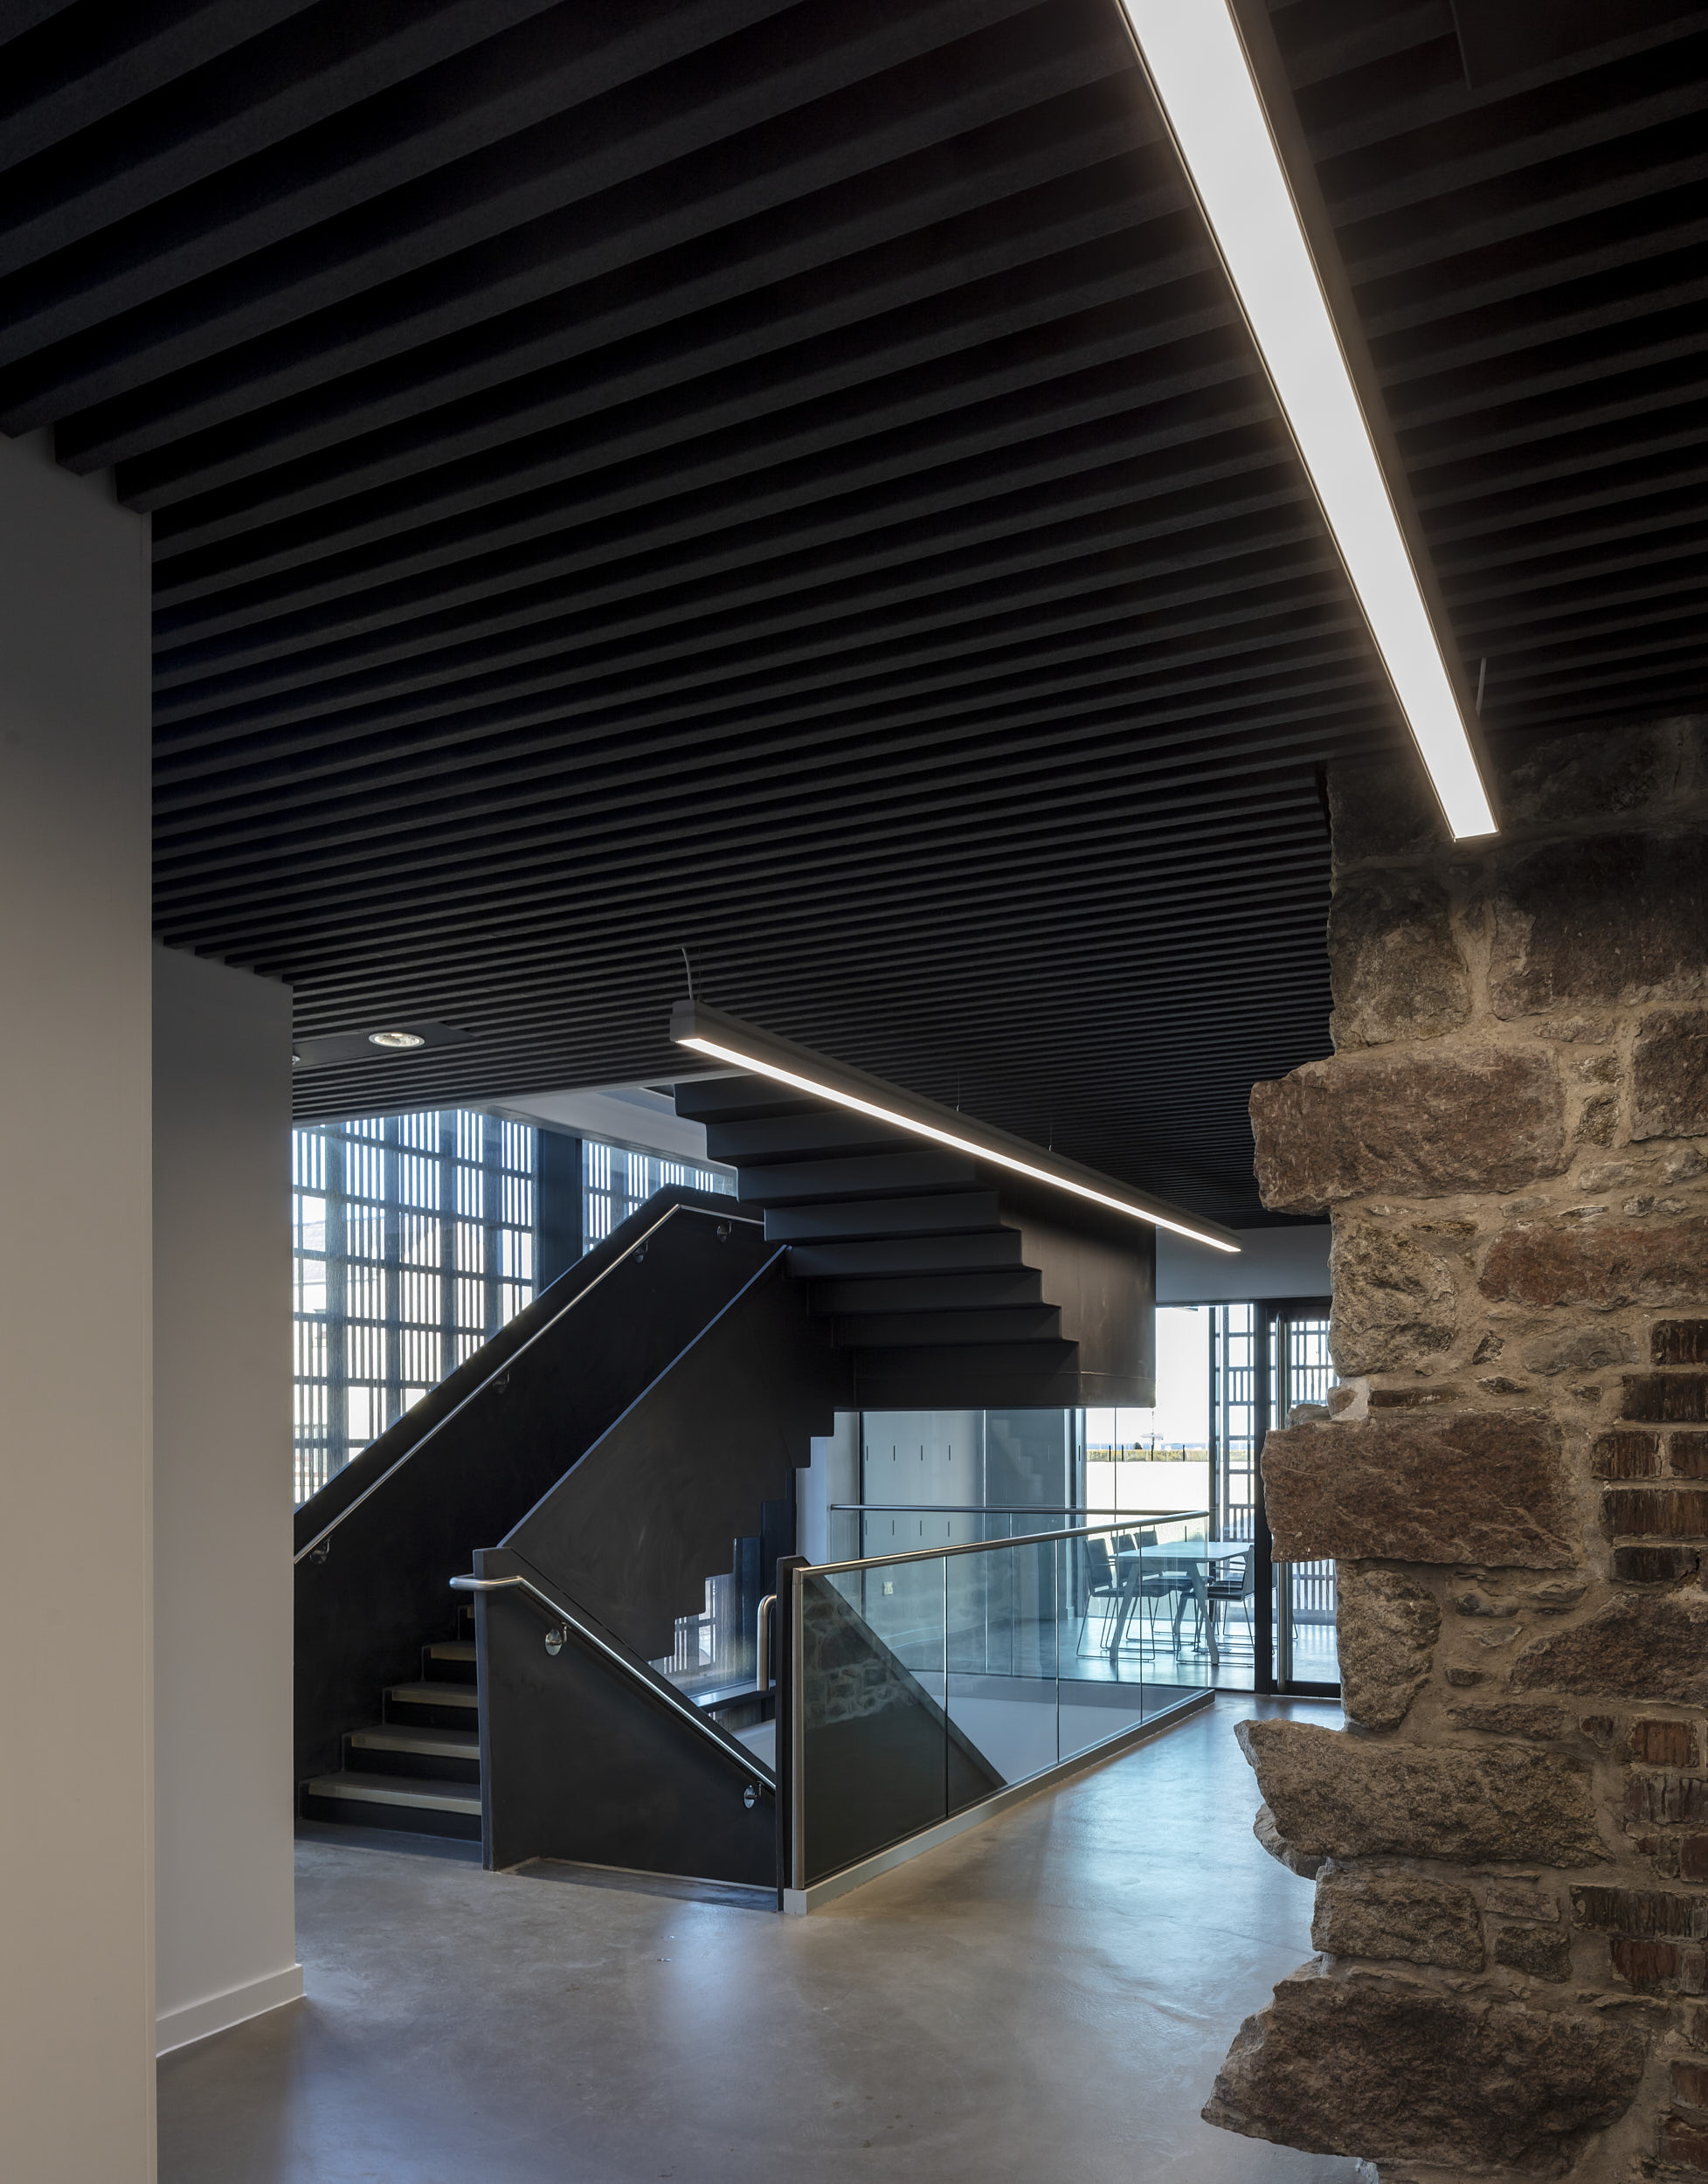 Interior photograph showing modern, minimalist stair contrasting with the existing, roughly-finished stone wall and black painted timber ceiling.